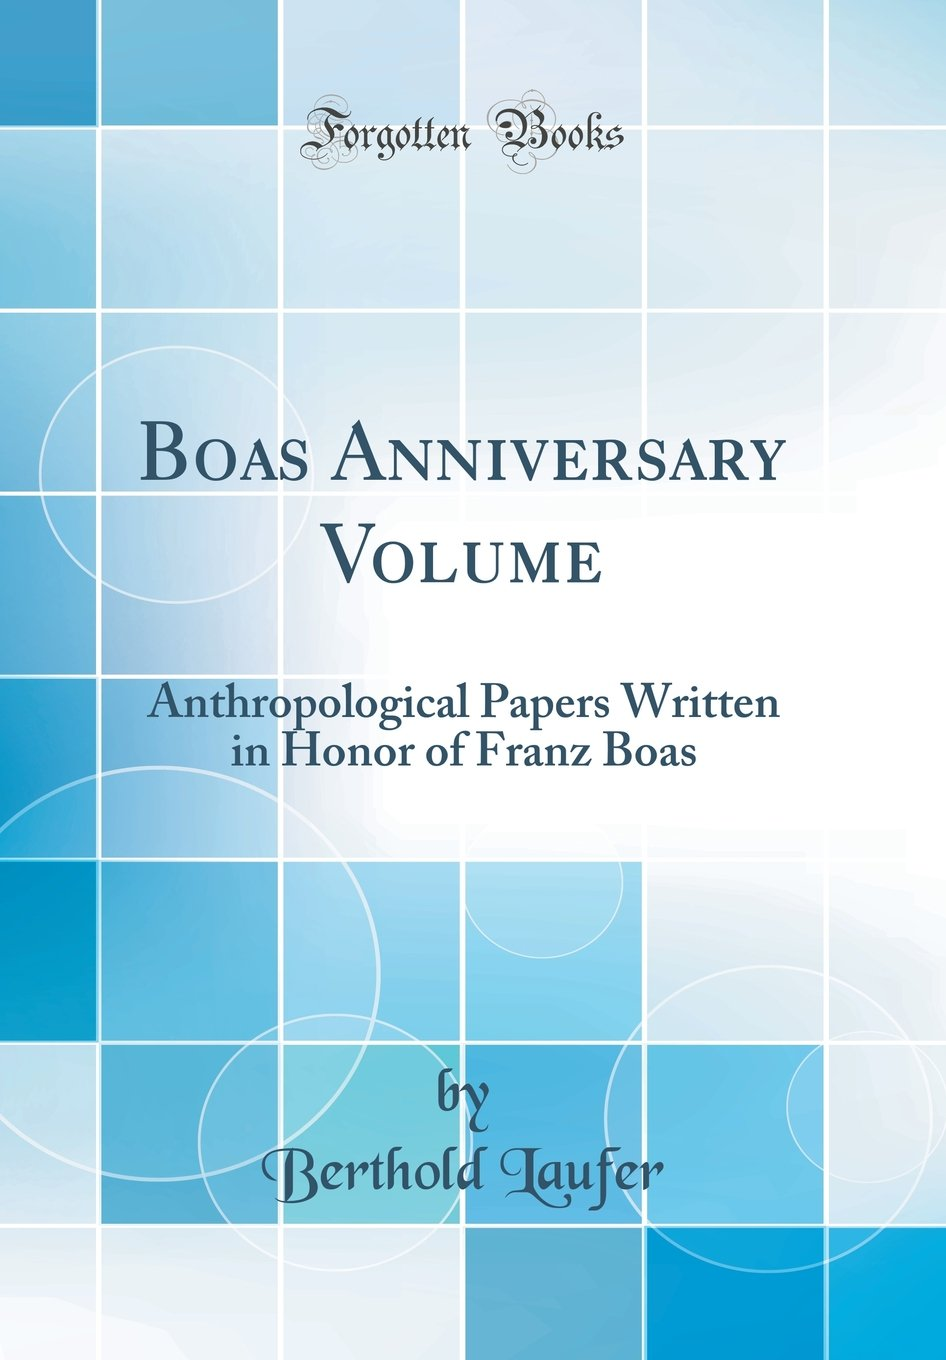 Boas Anniversary Volume: Anthropological Papers Written in Honor of Franz Boas (Classic Reprint) PDF